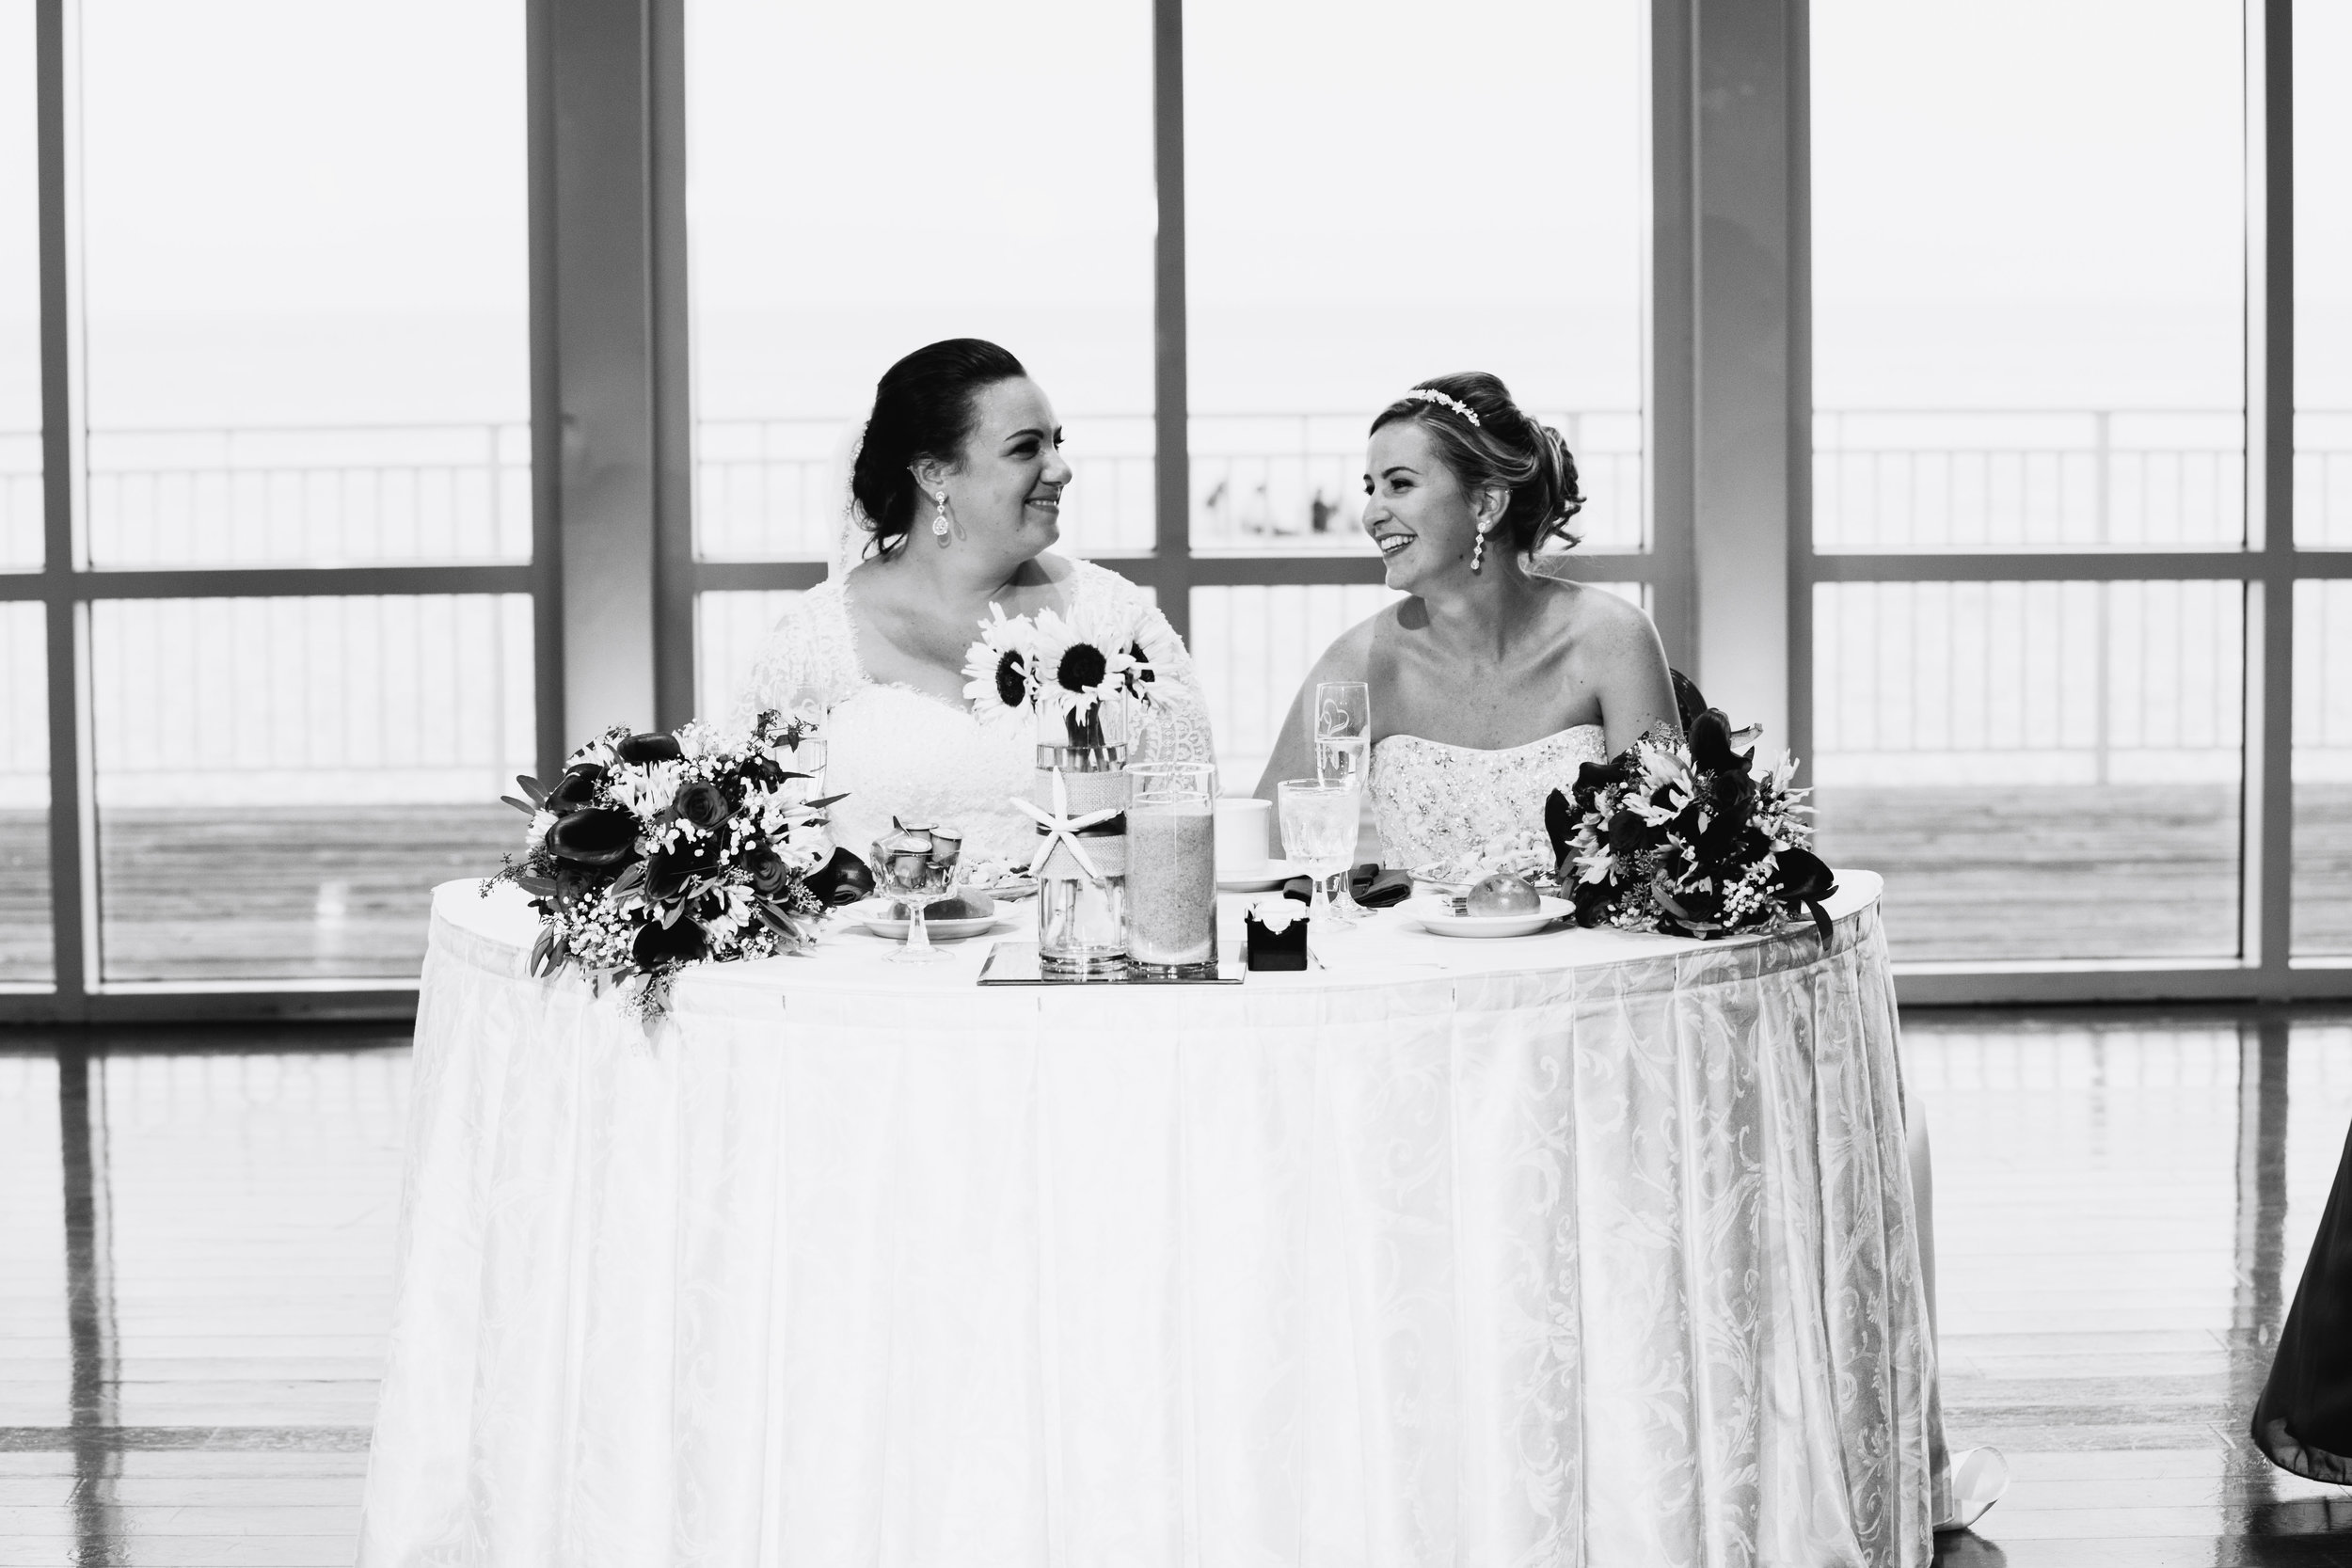 Kim and Dominique  - Cape May Convention Hall Wedding - 146.jpg